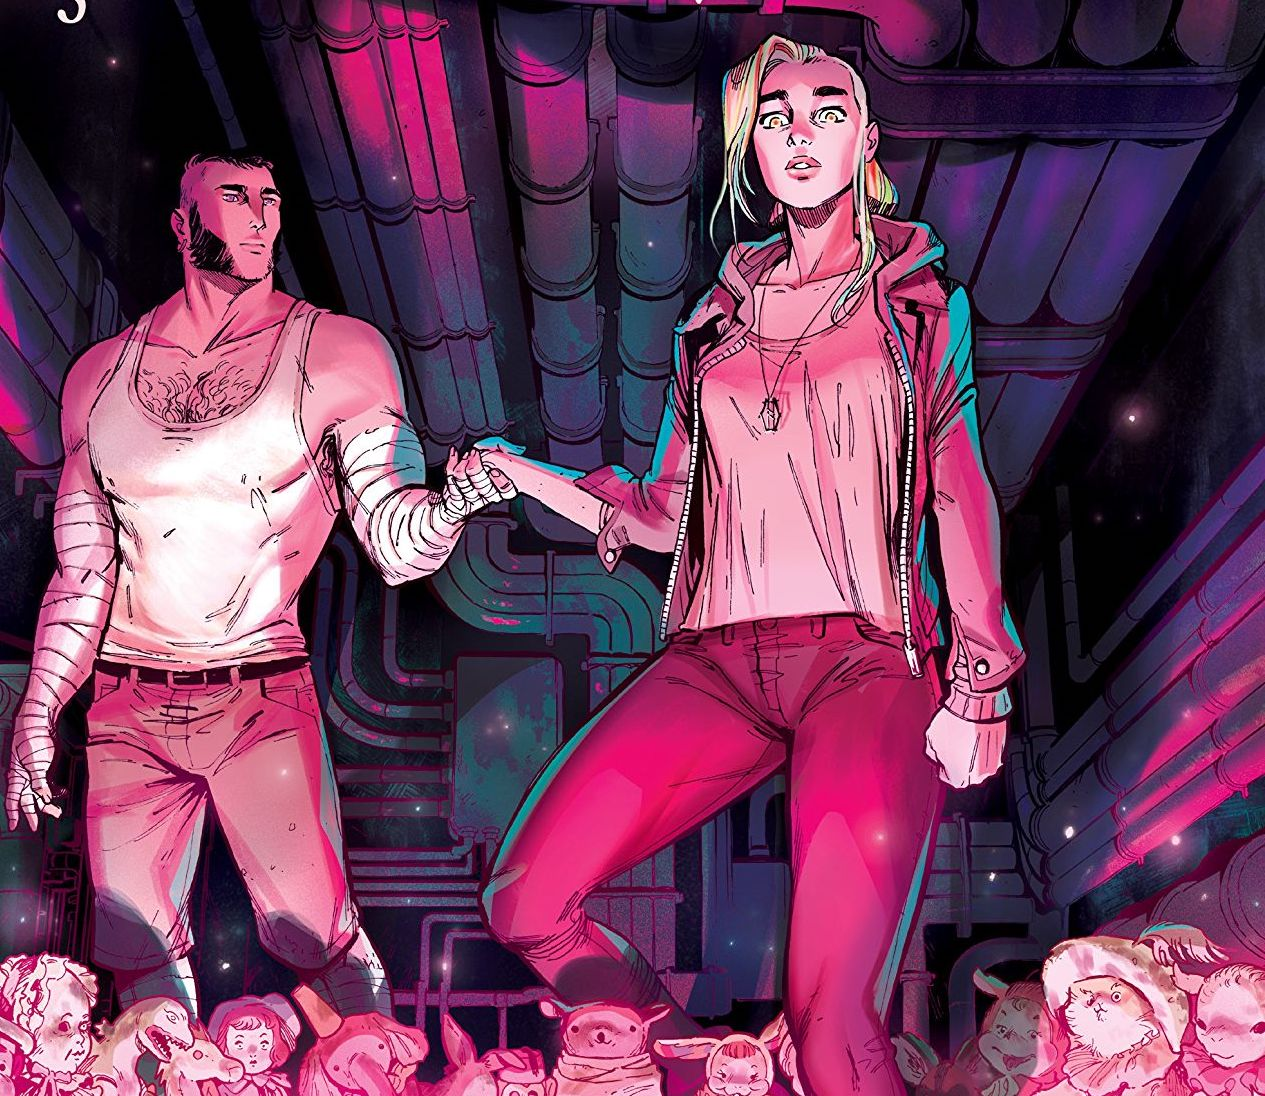 Nomen Omen #3 review: Abracadabra! Now you have a deeply human story